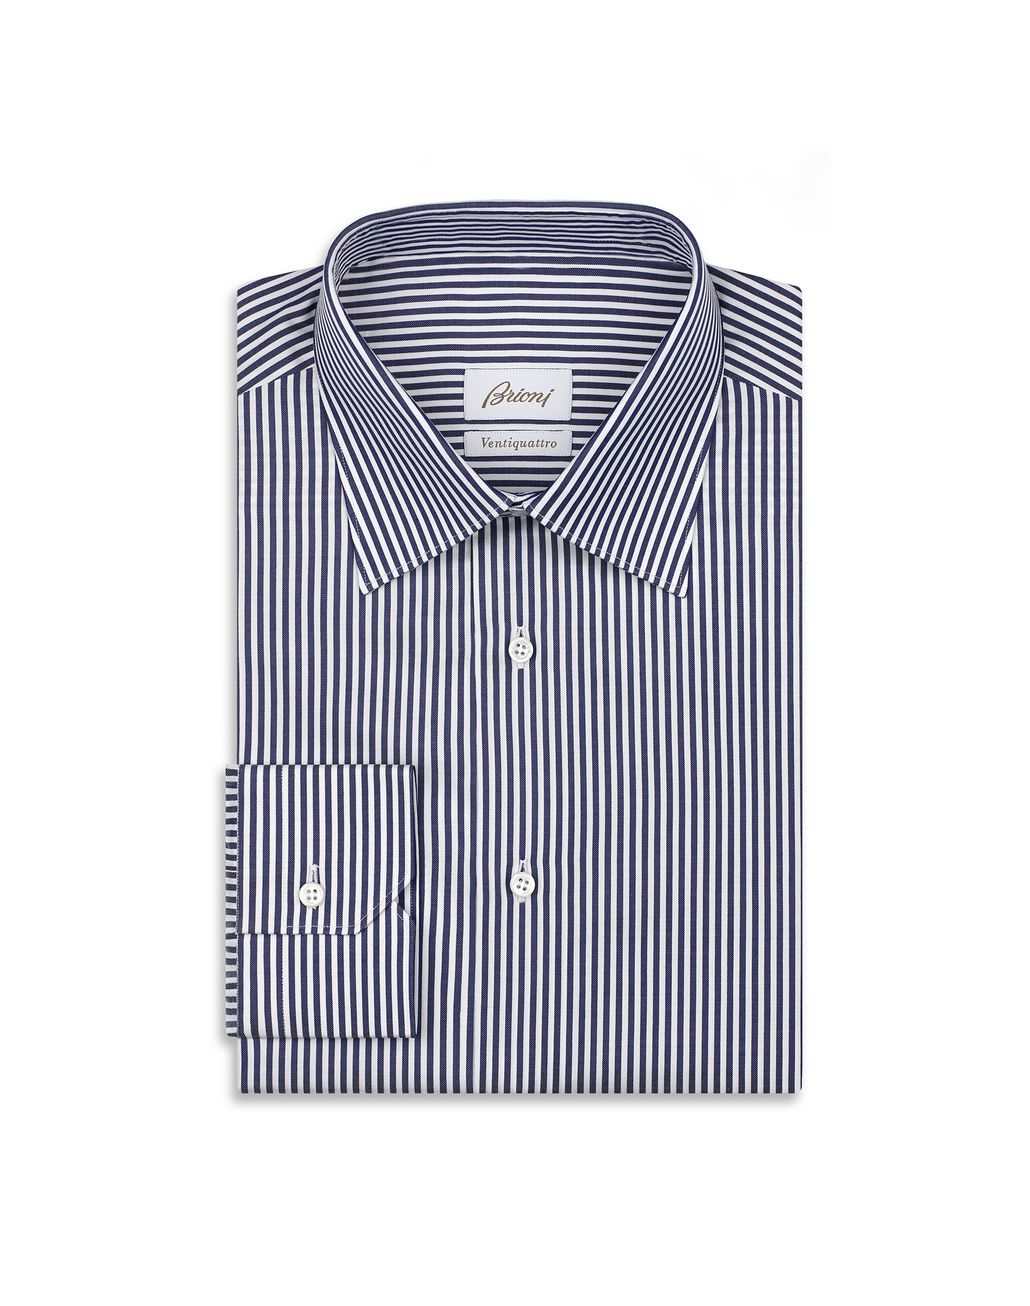 BRIONI Navy Blue and White Striped Formal Shirt Formal shirt [*** pickupInStoreShippingNotGuaranteed_info ***] f